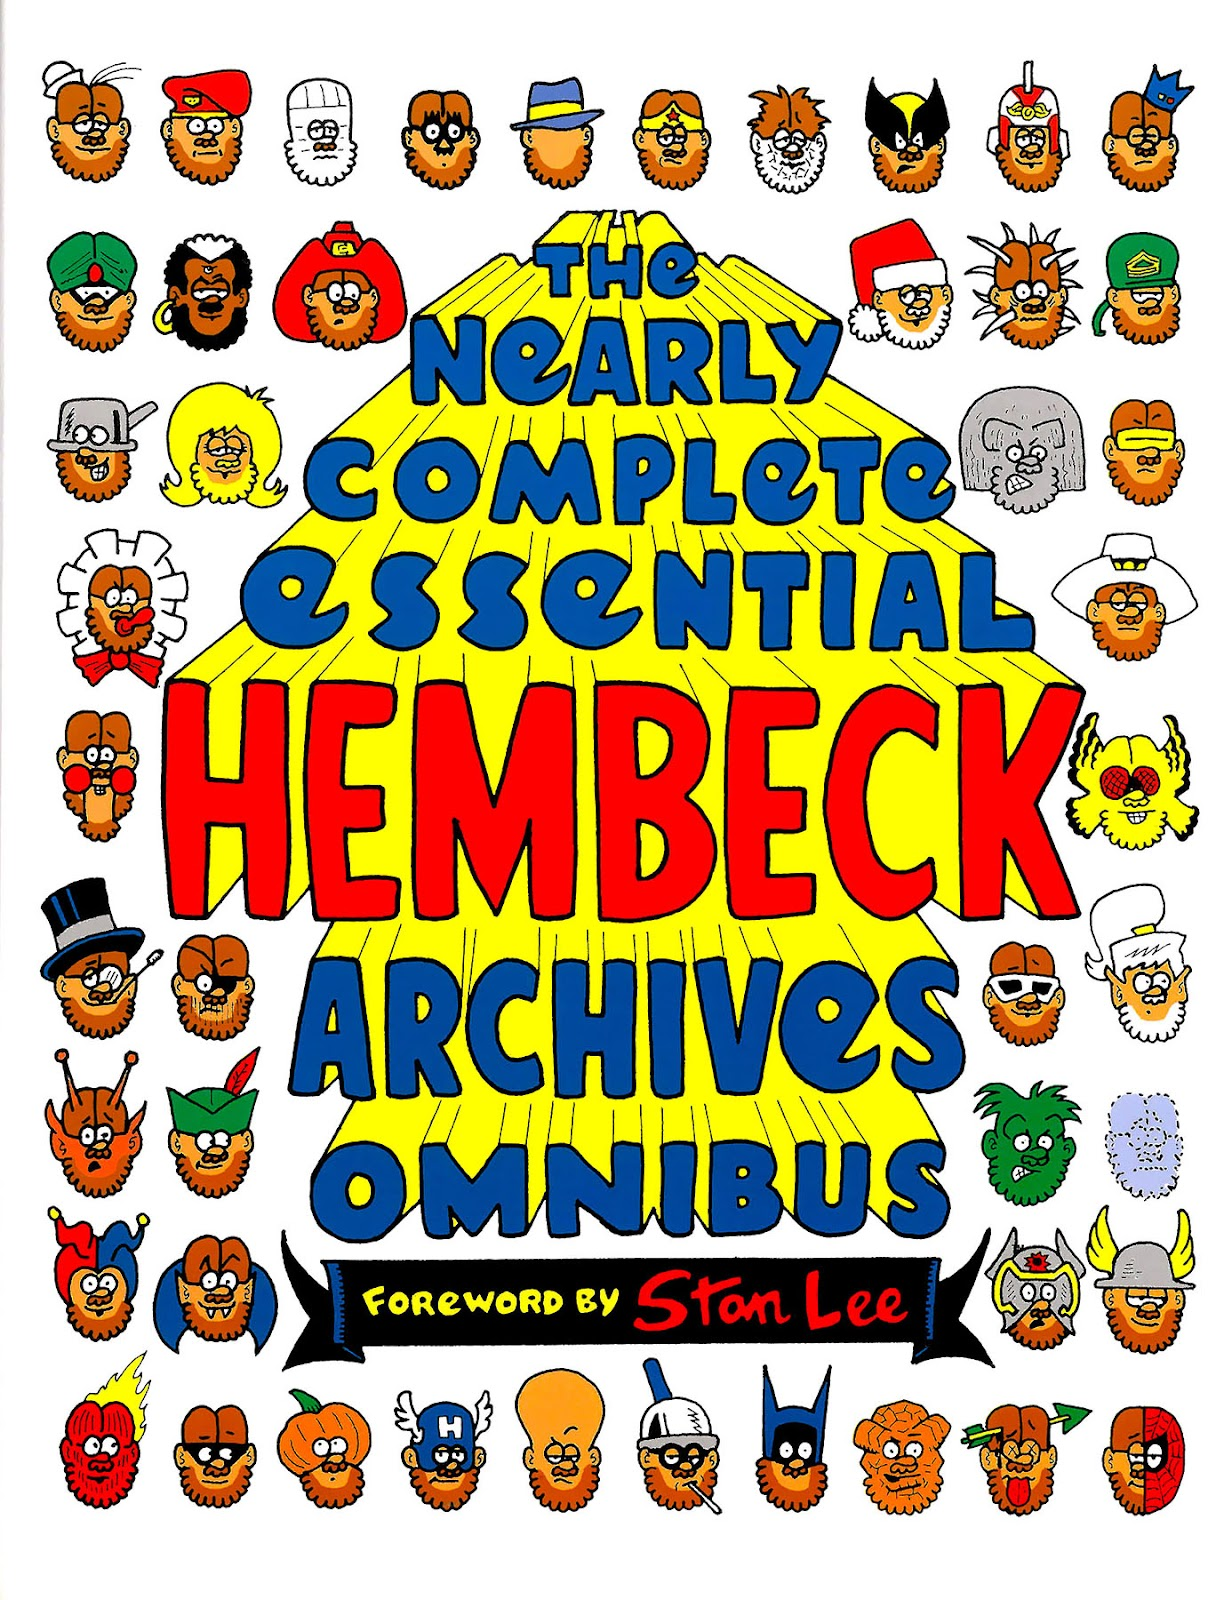 Read online The Nearly Complete Essential Hembeck Archives Omnibus comic -  Issue # TPB (Part 1) - 1